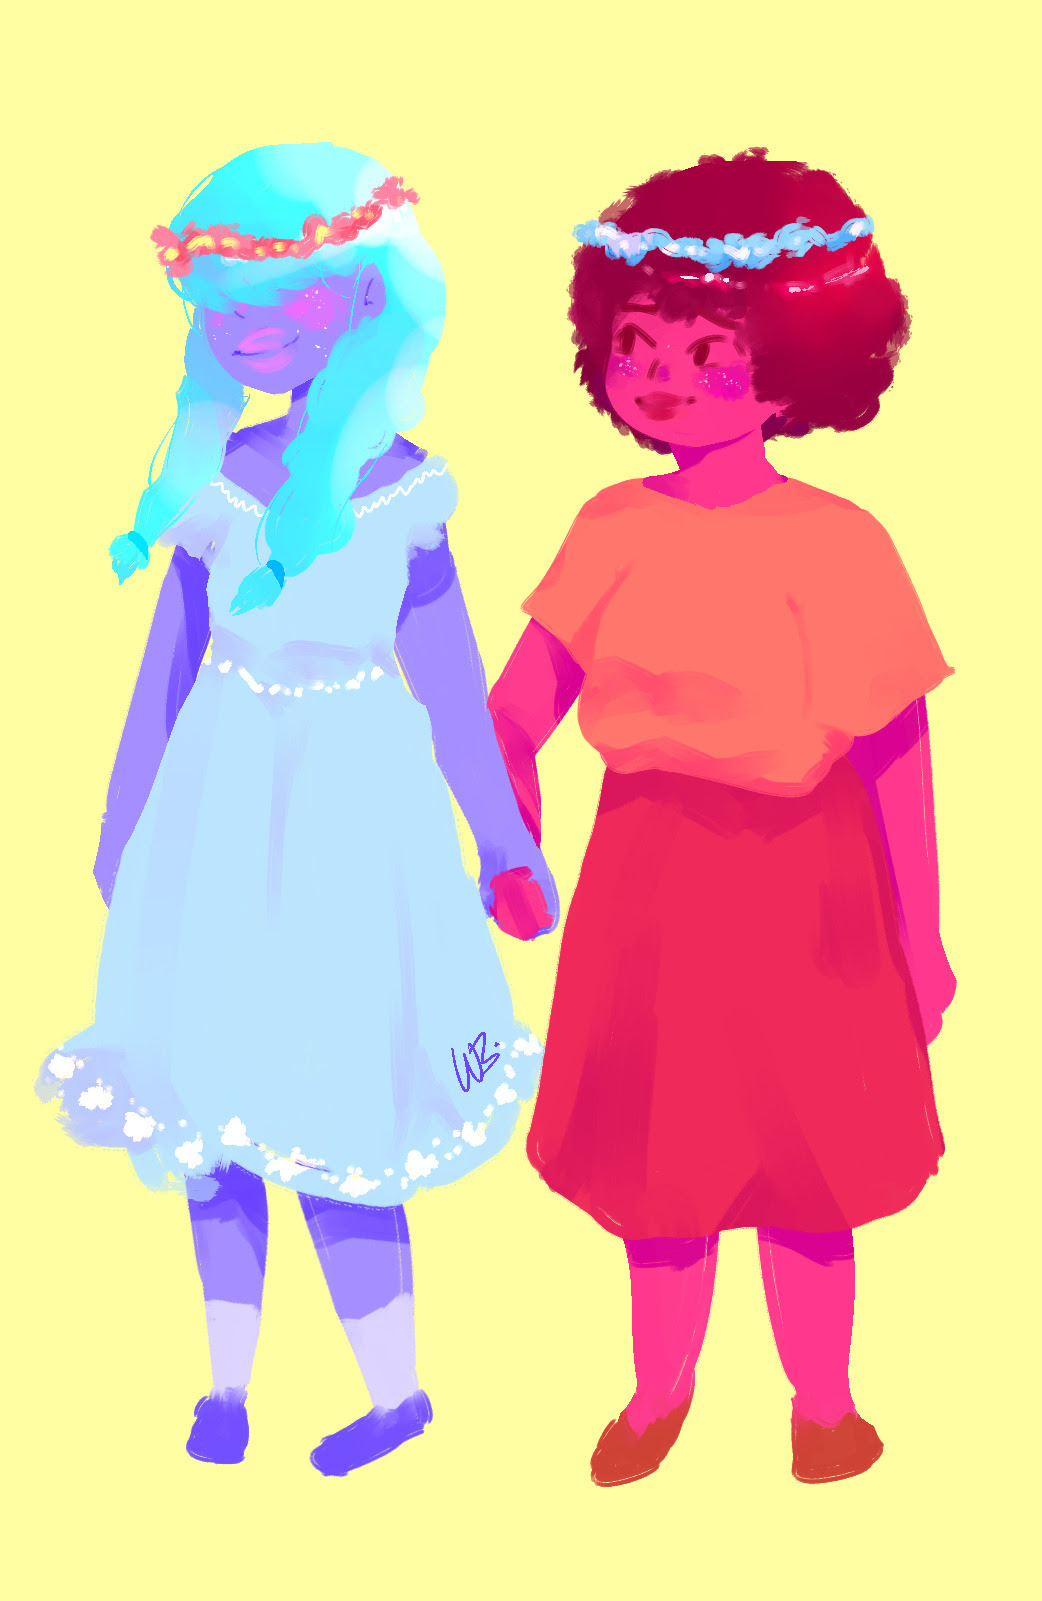 Two of my Rupphire posts for the SU Ship Tribute!!